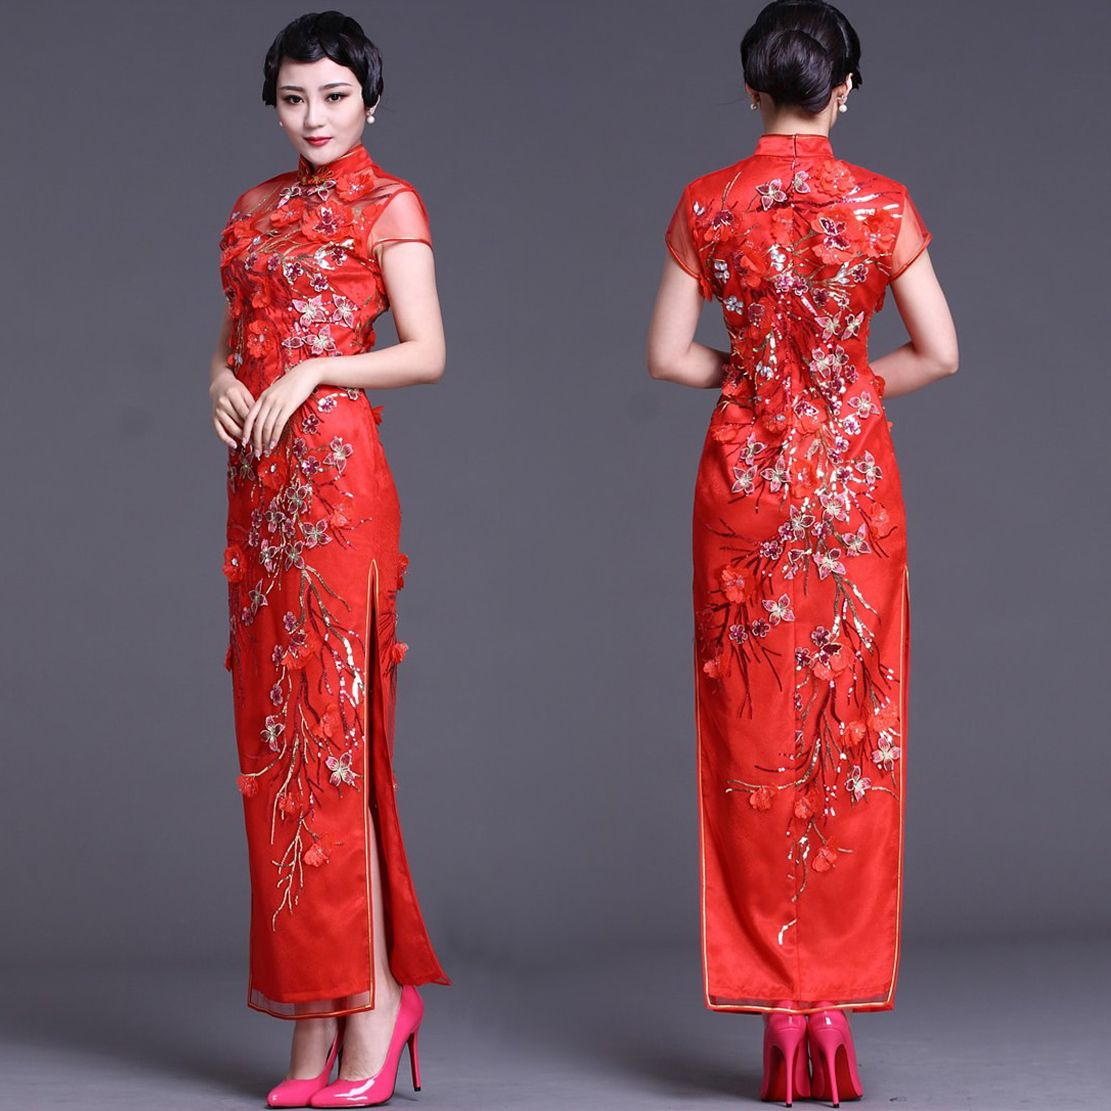 Embroidered red floral gauze qipao traditional chinese for Chinese wedding dresses online